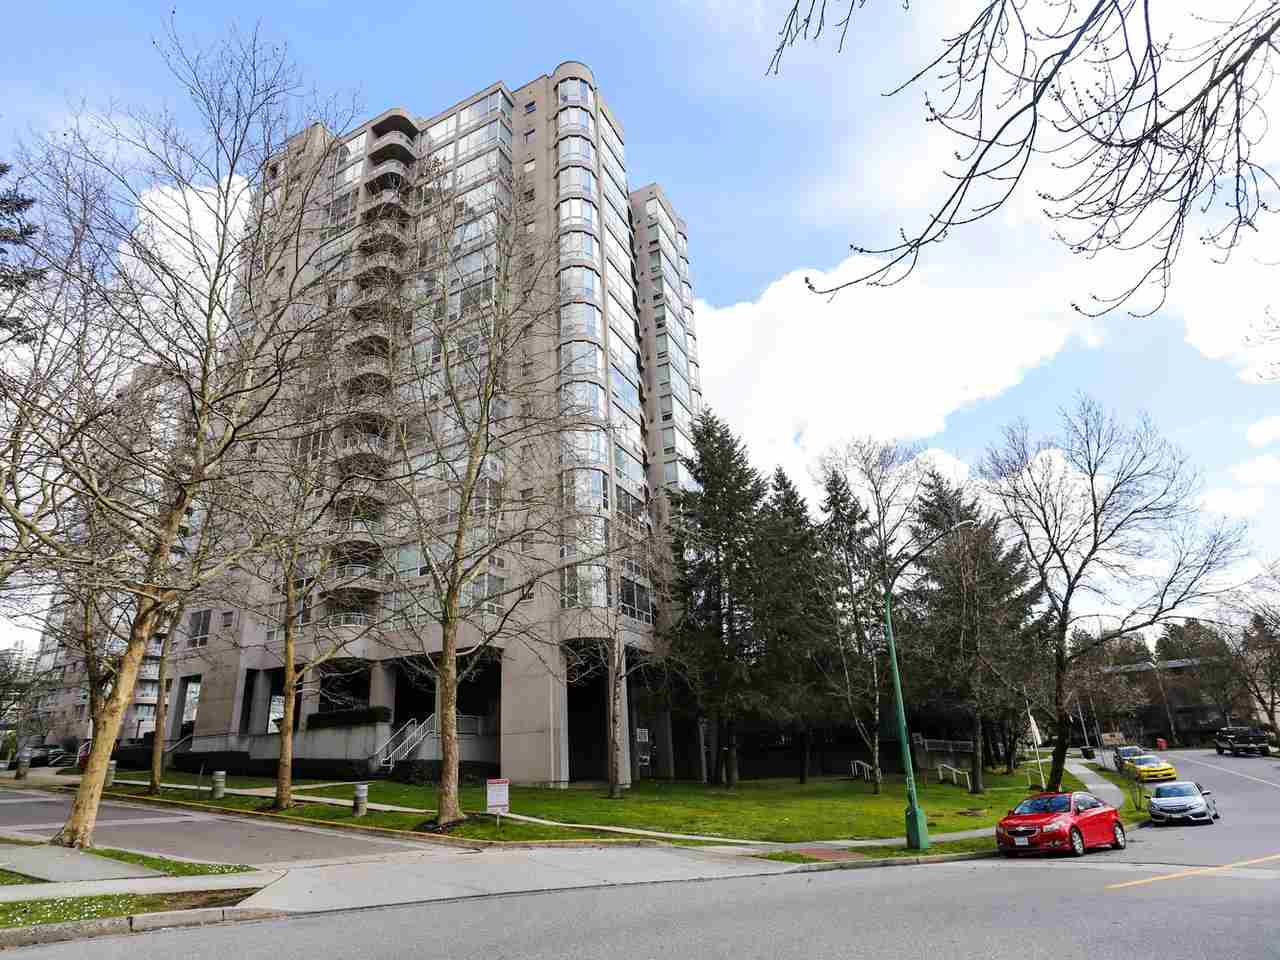 For Sale: 1307 - 9623 Manchester Drive, Burnaby, BC   2 Bed, 2 Bath Condo for $499000.